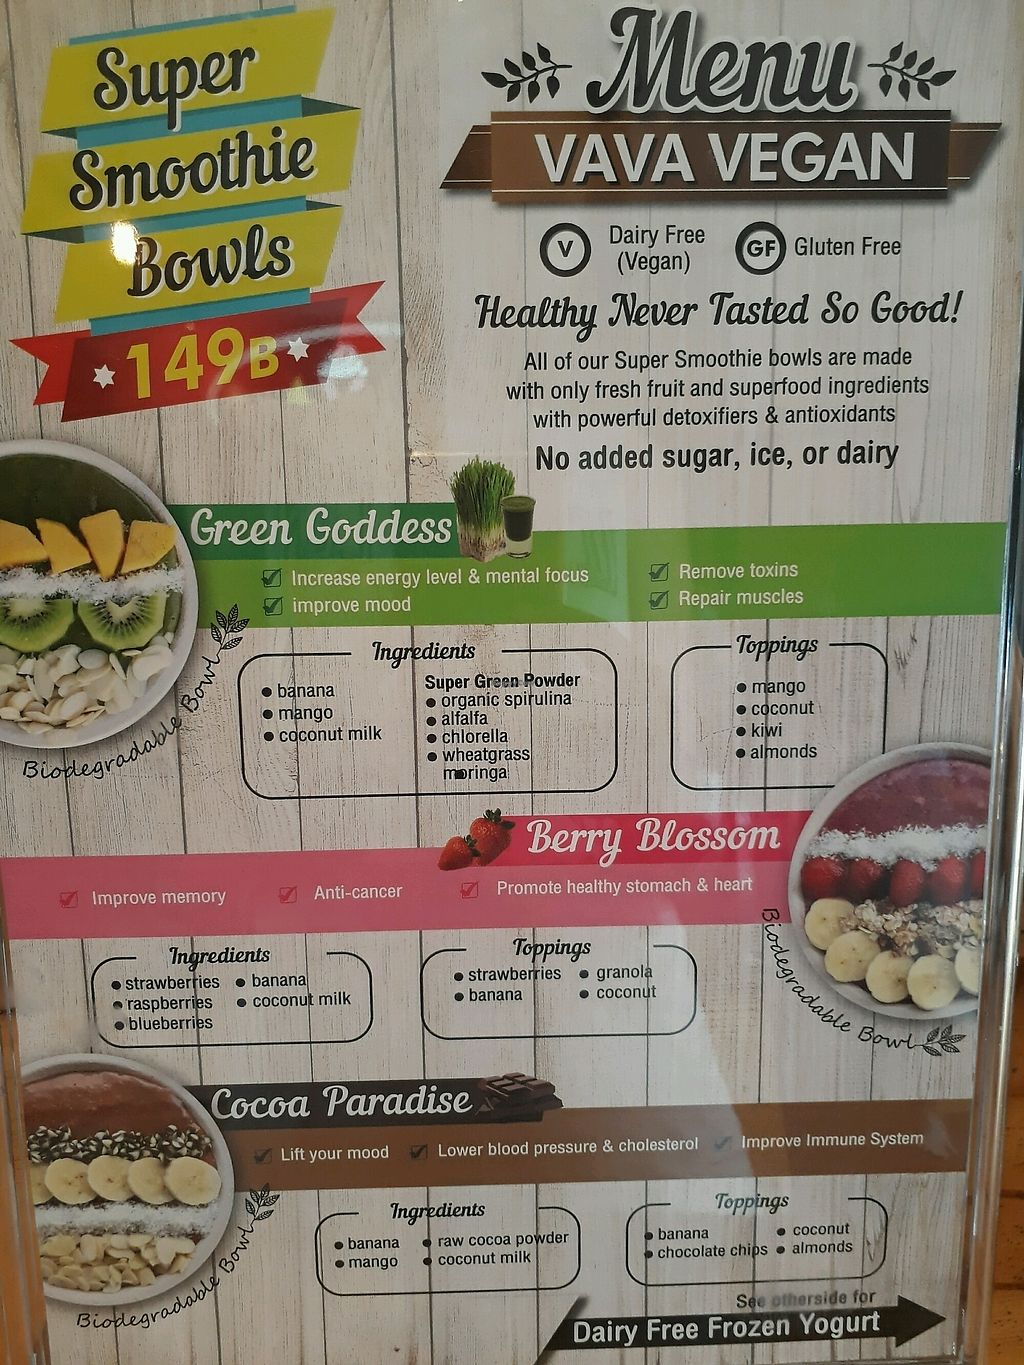 """Photo of VAVA Frozen Yogurt - Thae Pae Gate  by <a href=""""/members/profile/LilacHippy"""">LilacHippy</a> <br/>Vegan smoothie bowl menu  <br/> October 2, 2017  - <a href='/contact/abuse/image/102120/310973'>Report</a>"""